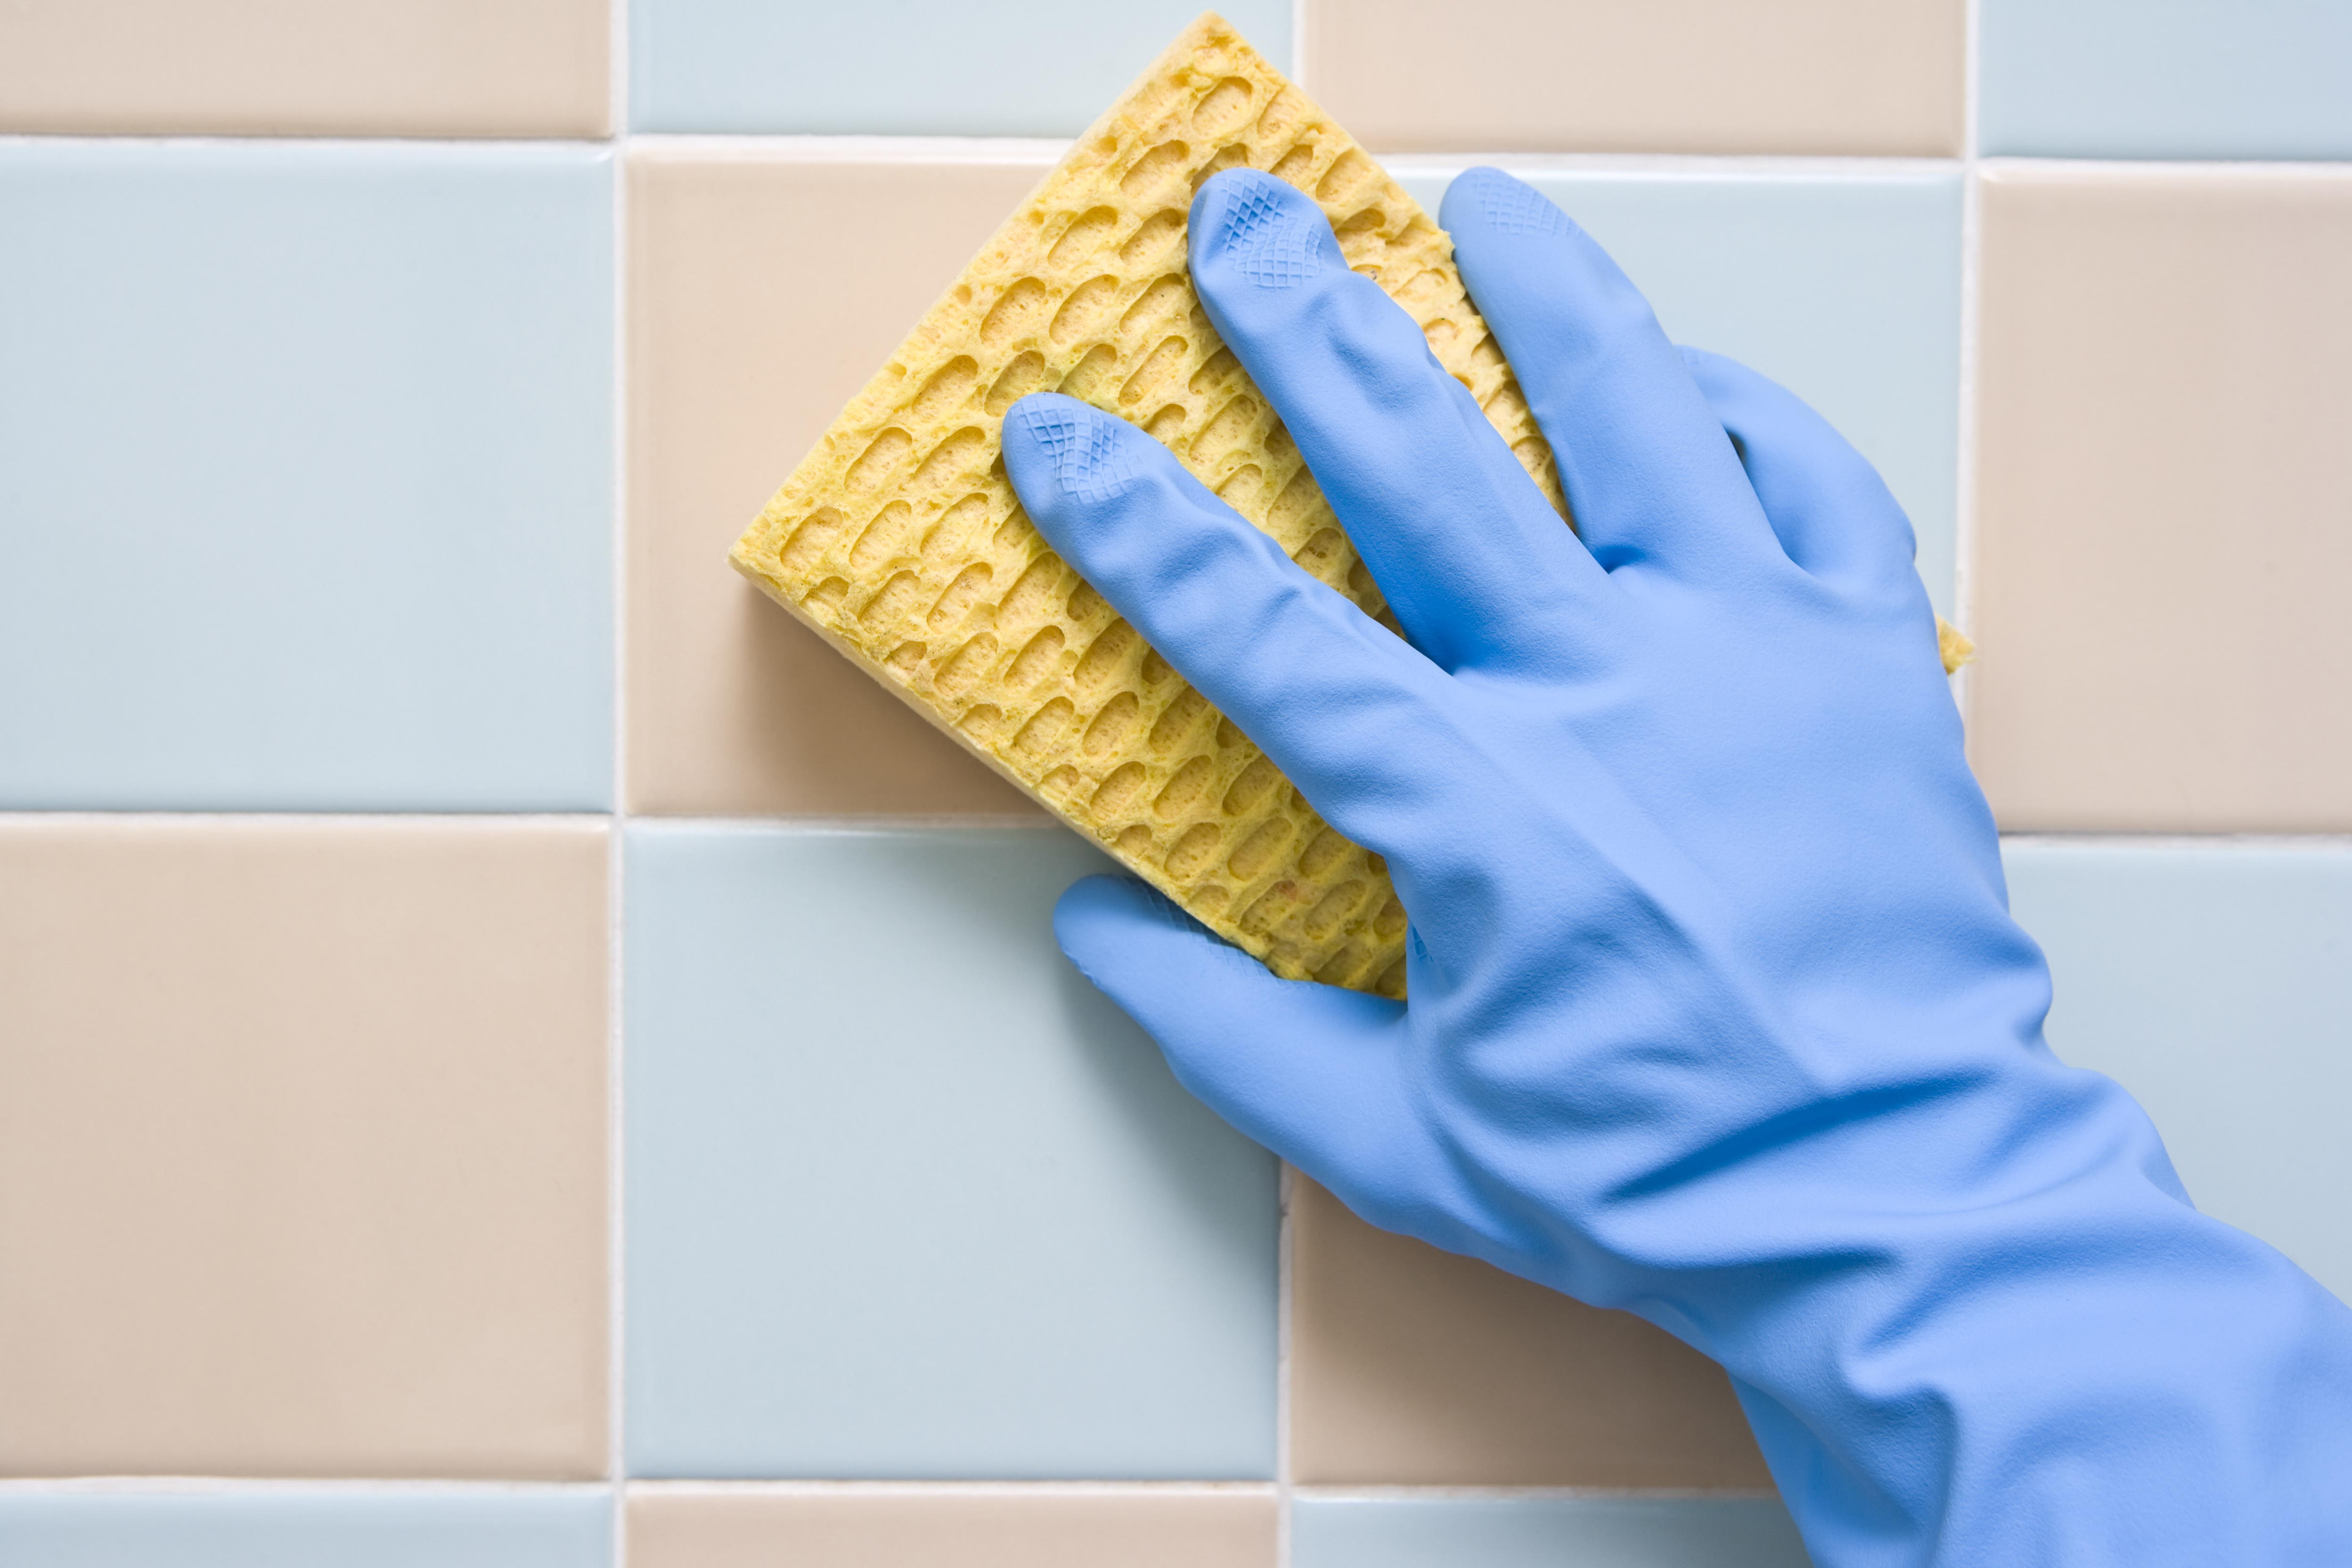 What to clean bathroom tiles with - What To Clean Bathroom Tiles With 47